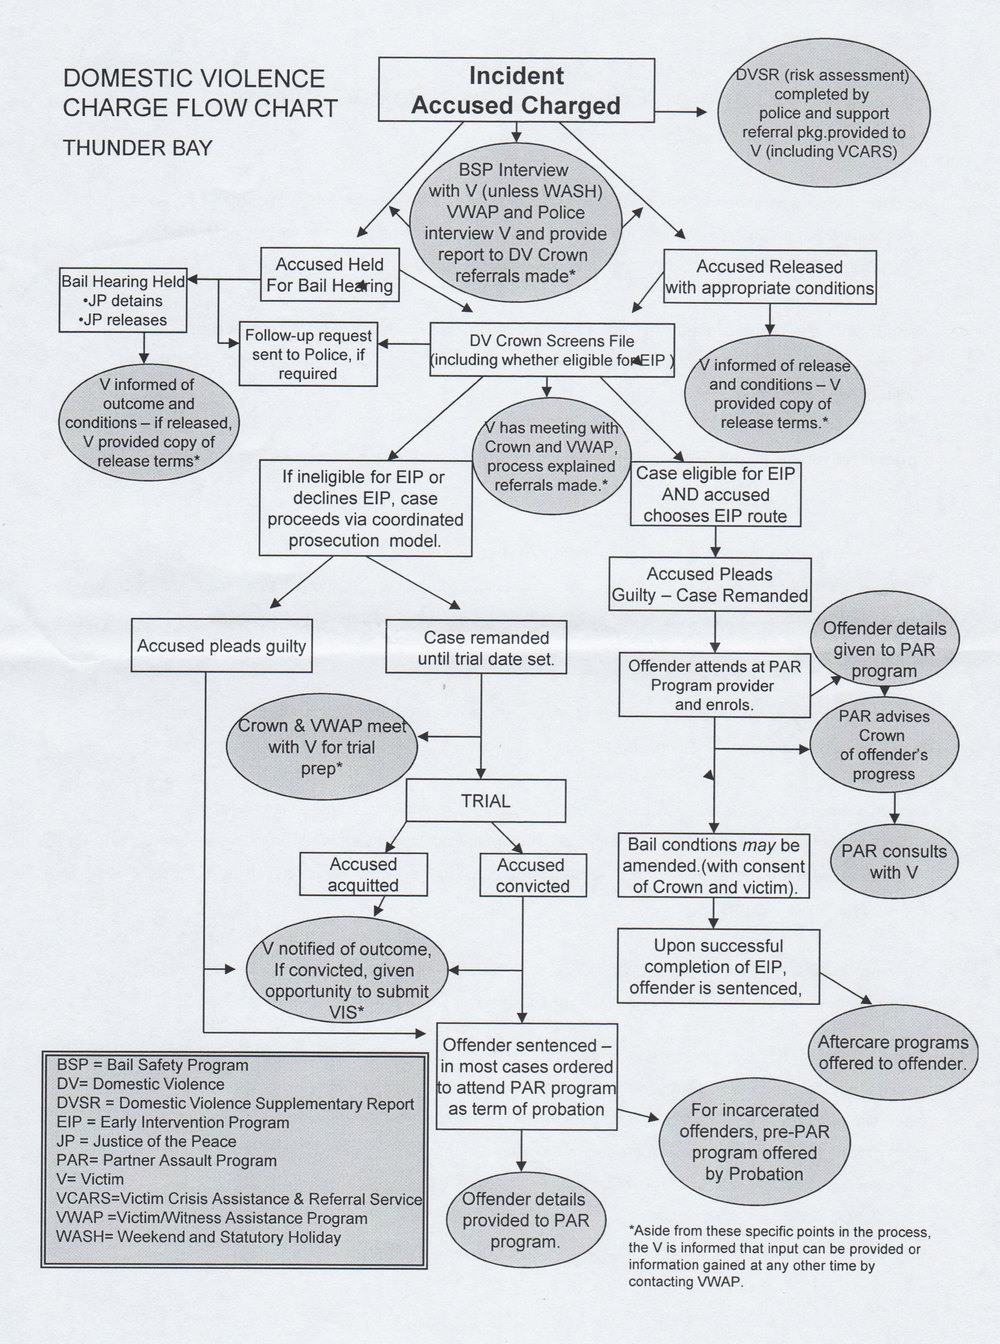 Thunder Bay DV Charge Flowchart